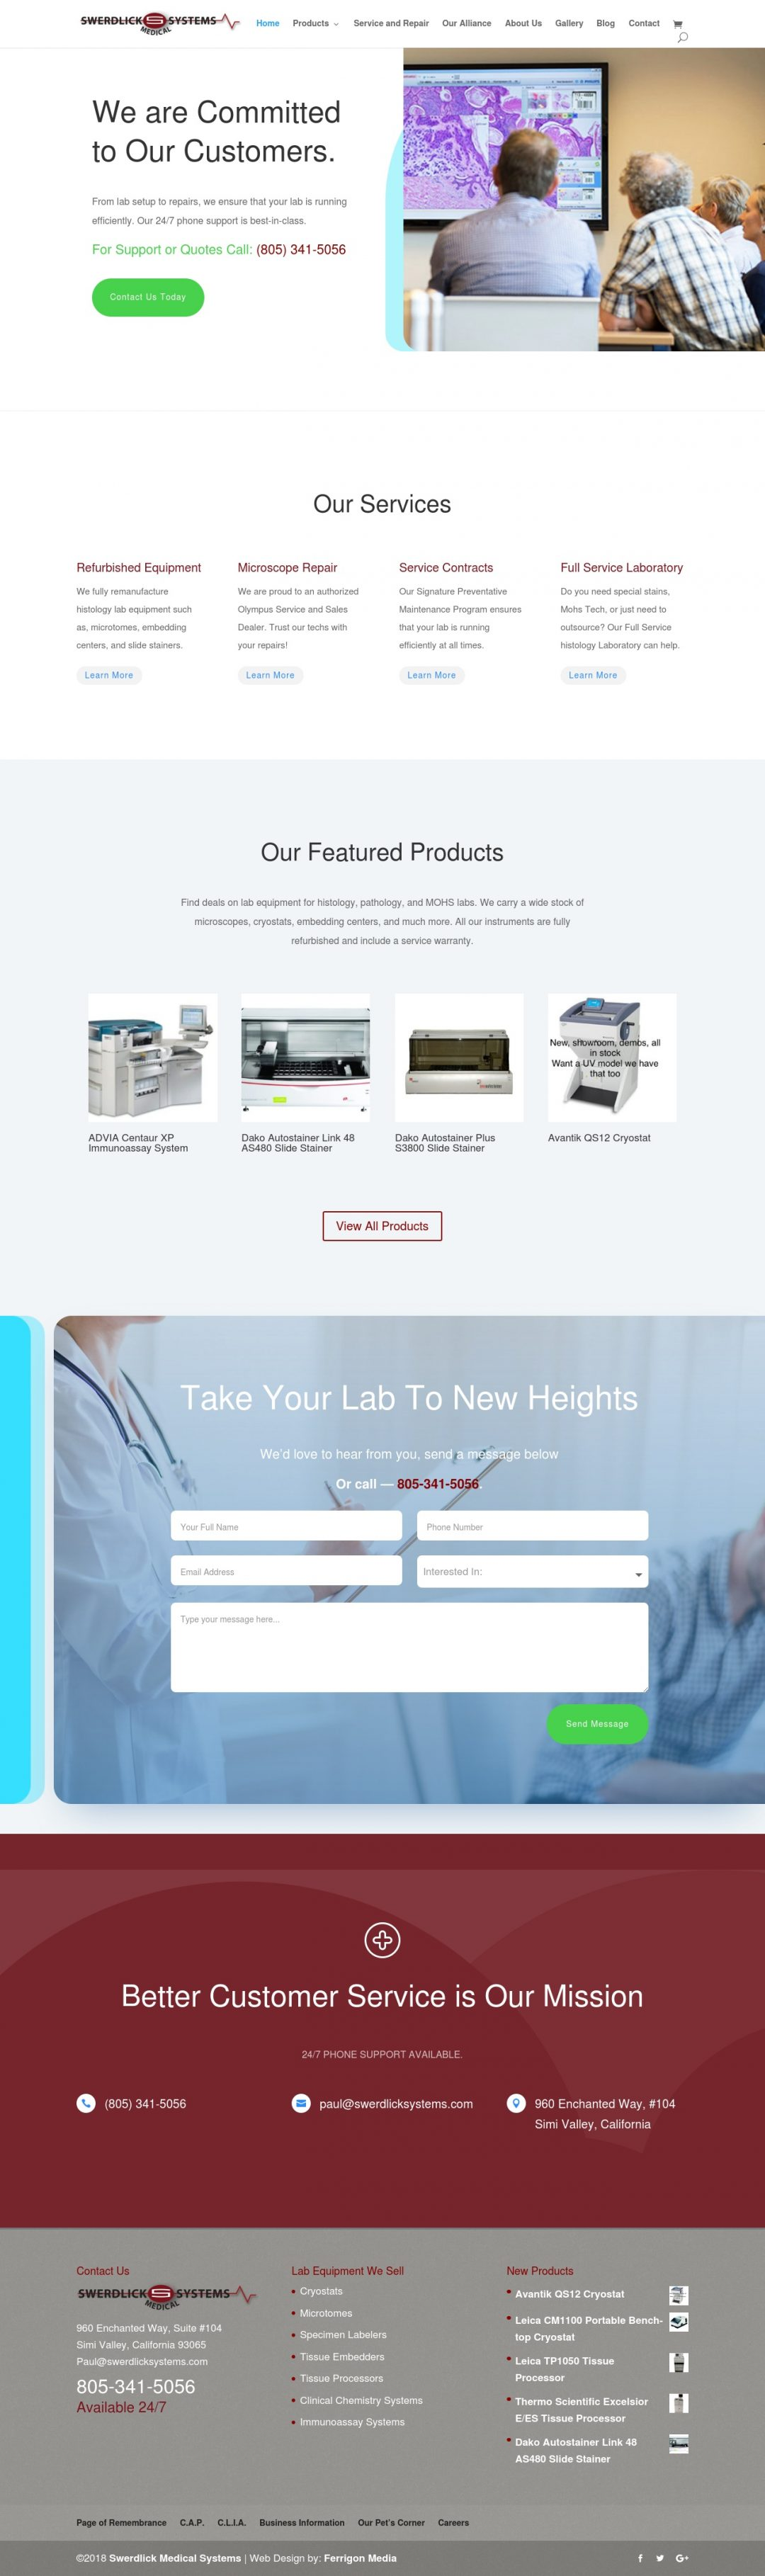 Swerdlick Medical Systems